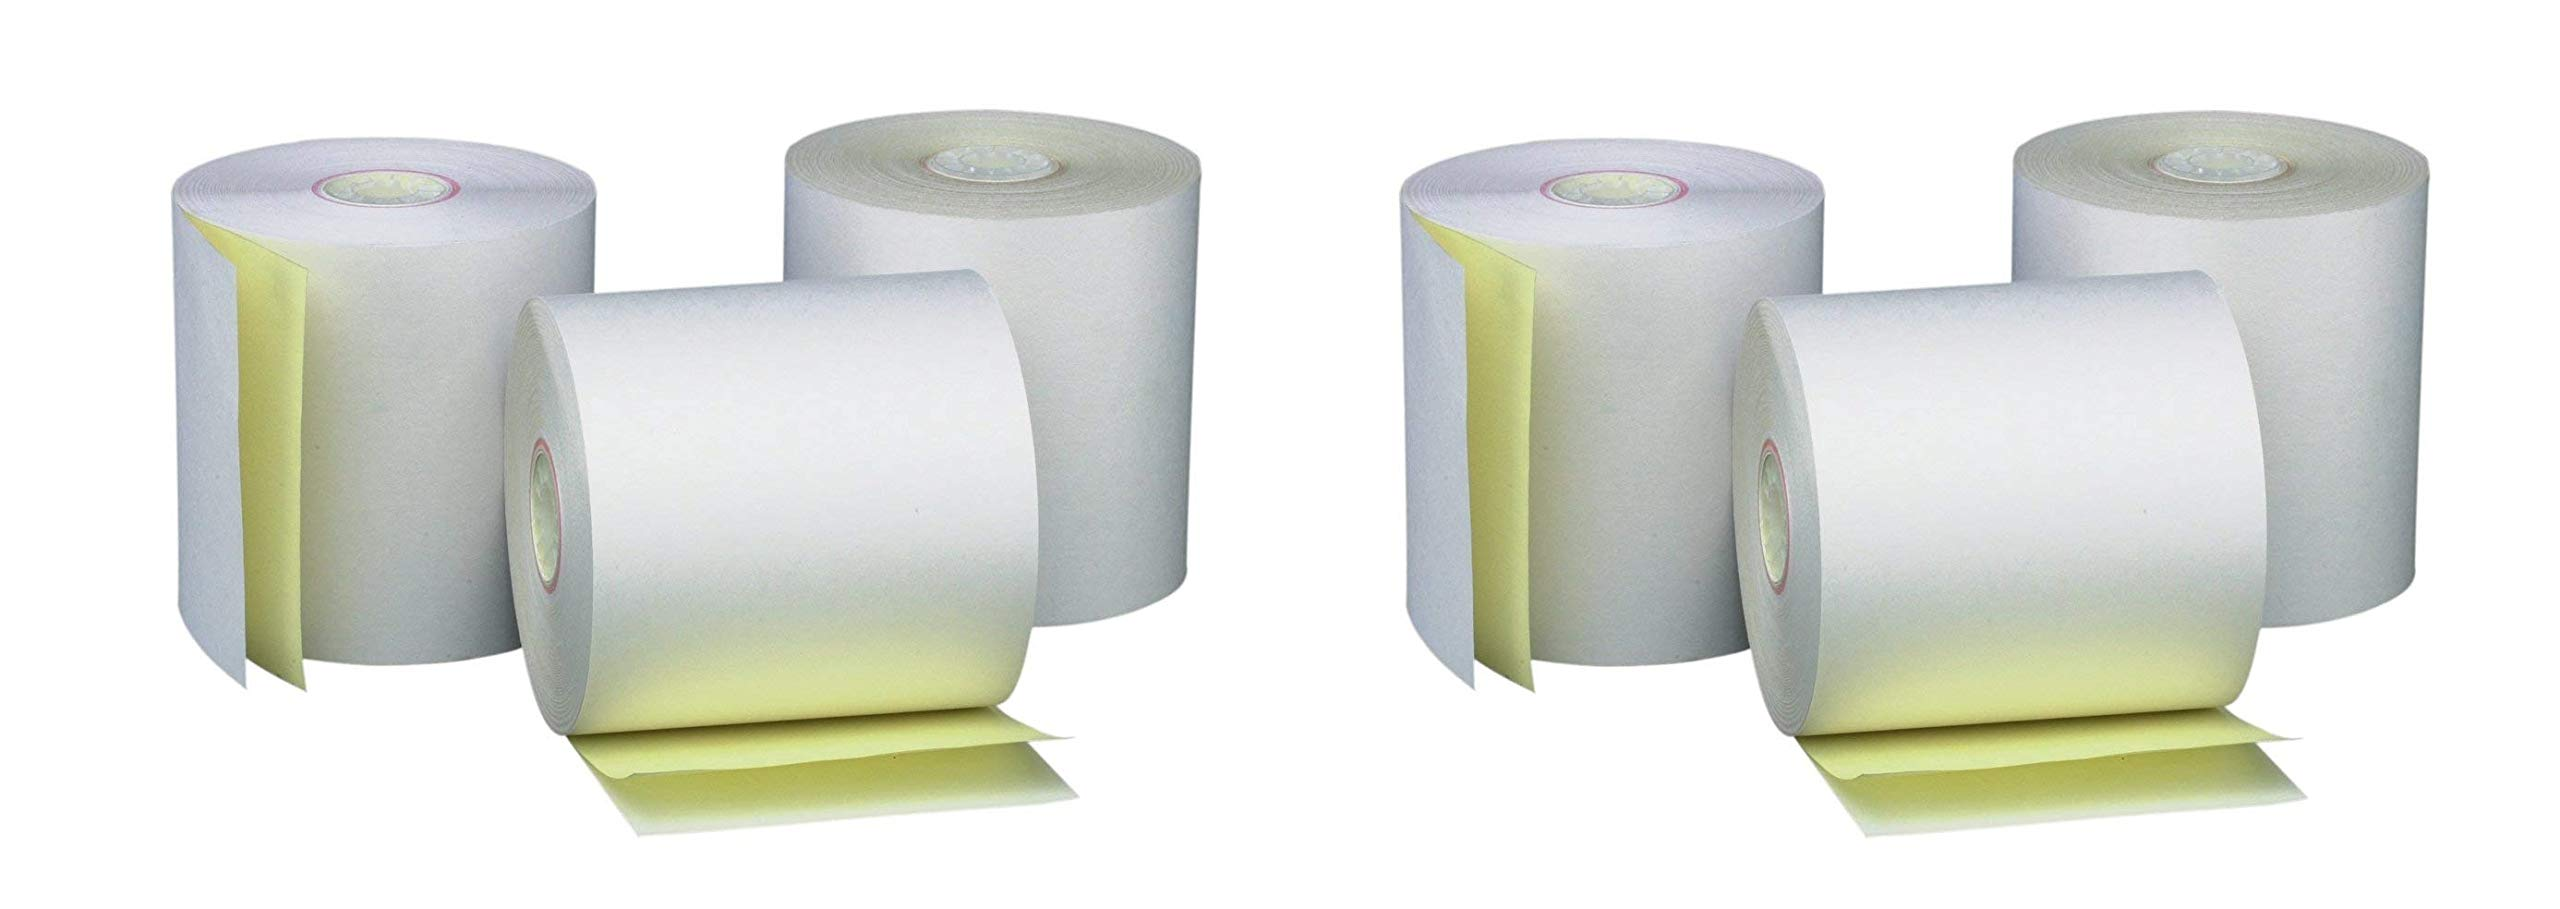 PM Company Perfection Two Ply Carbonless Rolls, 3 X 95 Feet, White/Canary, 50 Rolls Per Carton (07901) (2 X Pack of 3)